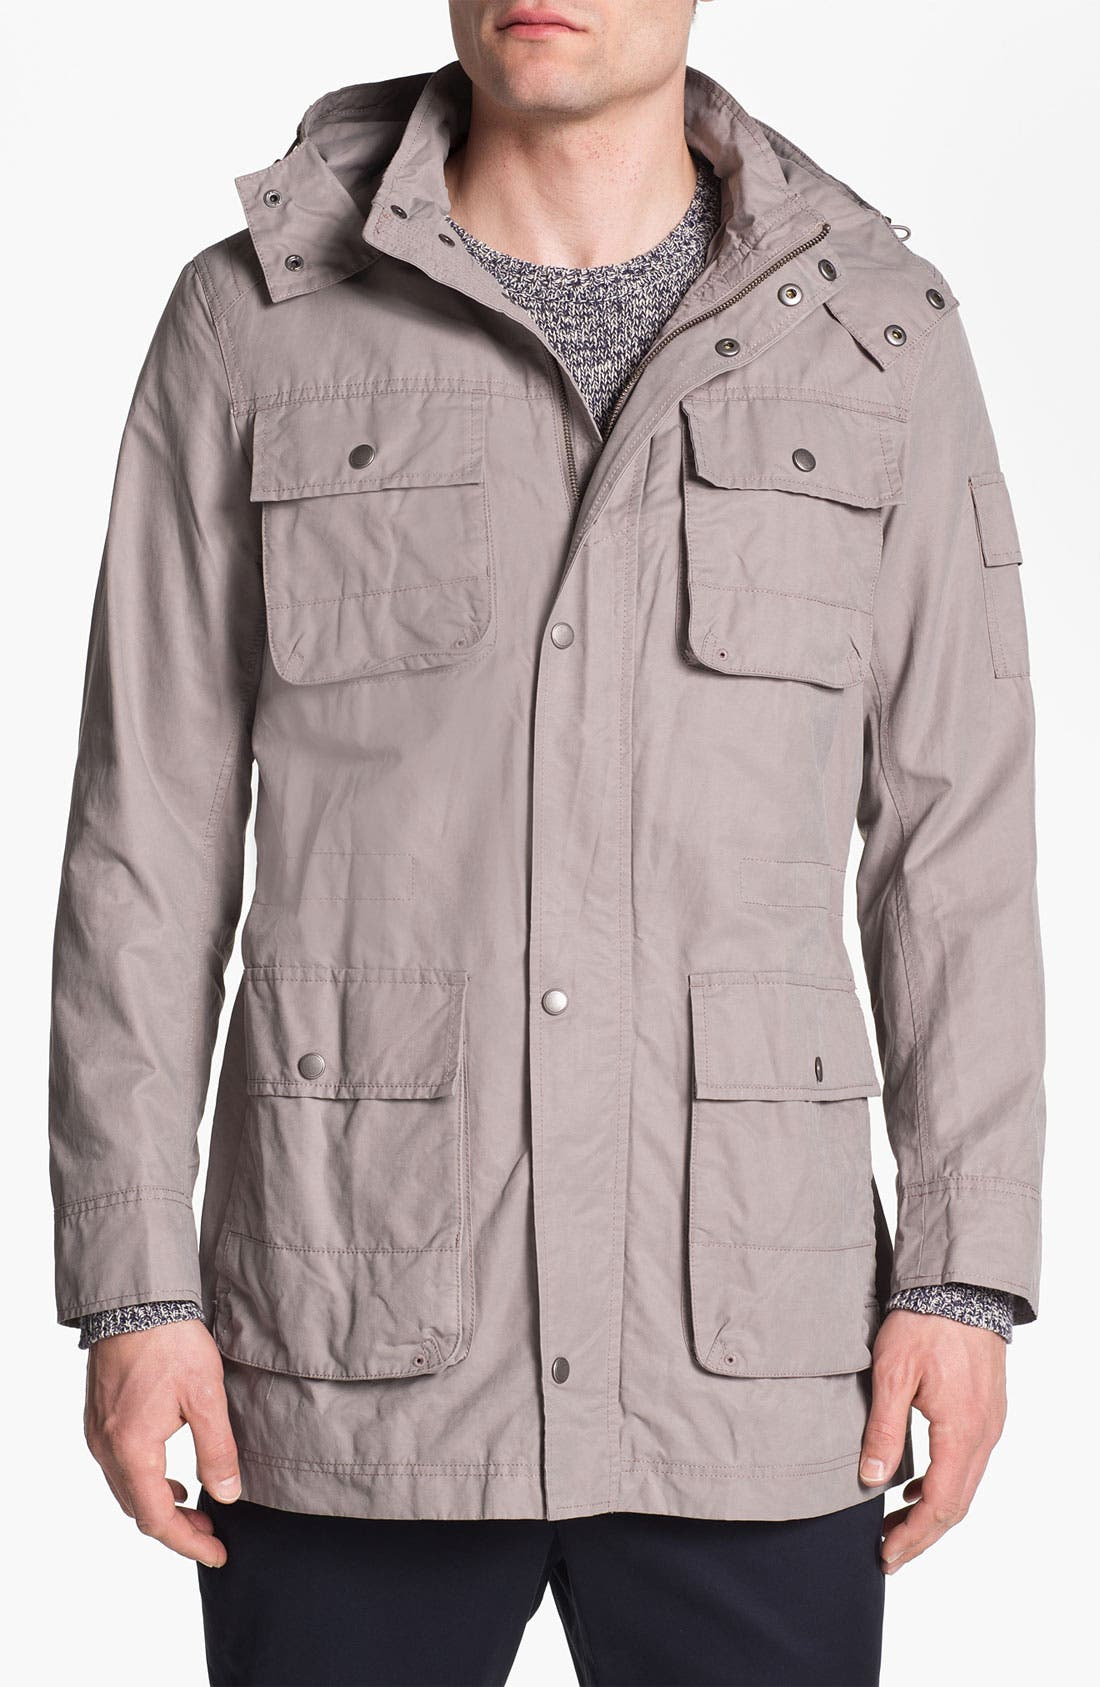 Alternate Image 1 Selected - Cole Haan Hooded Jacket